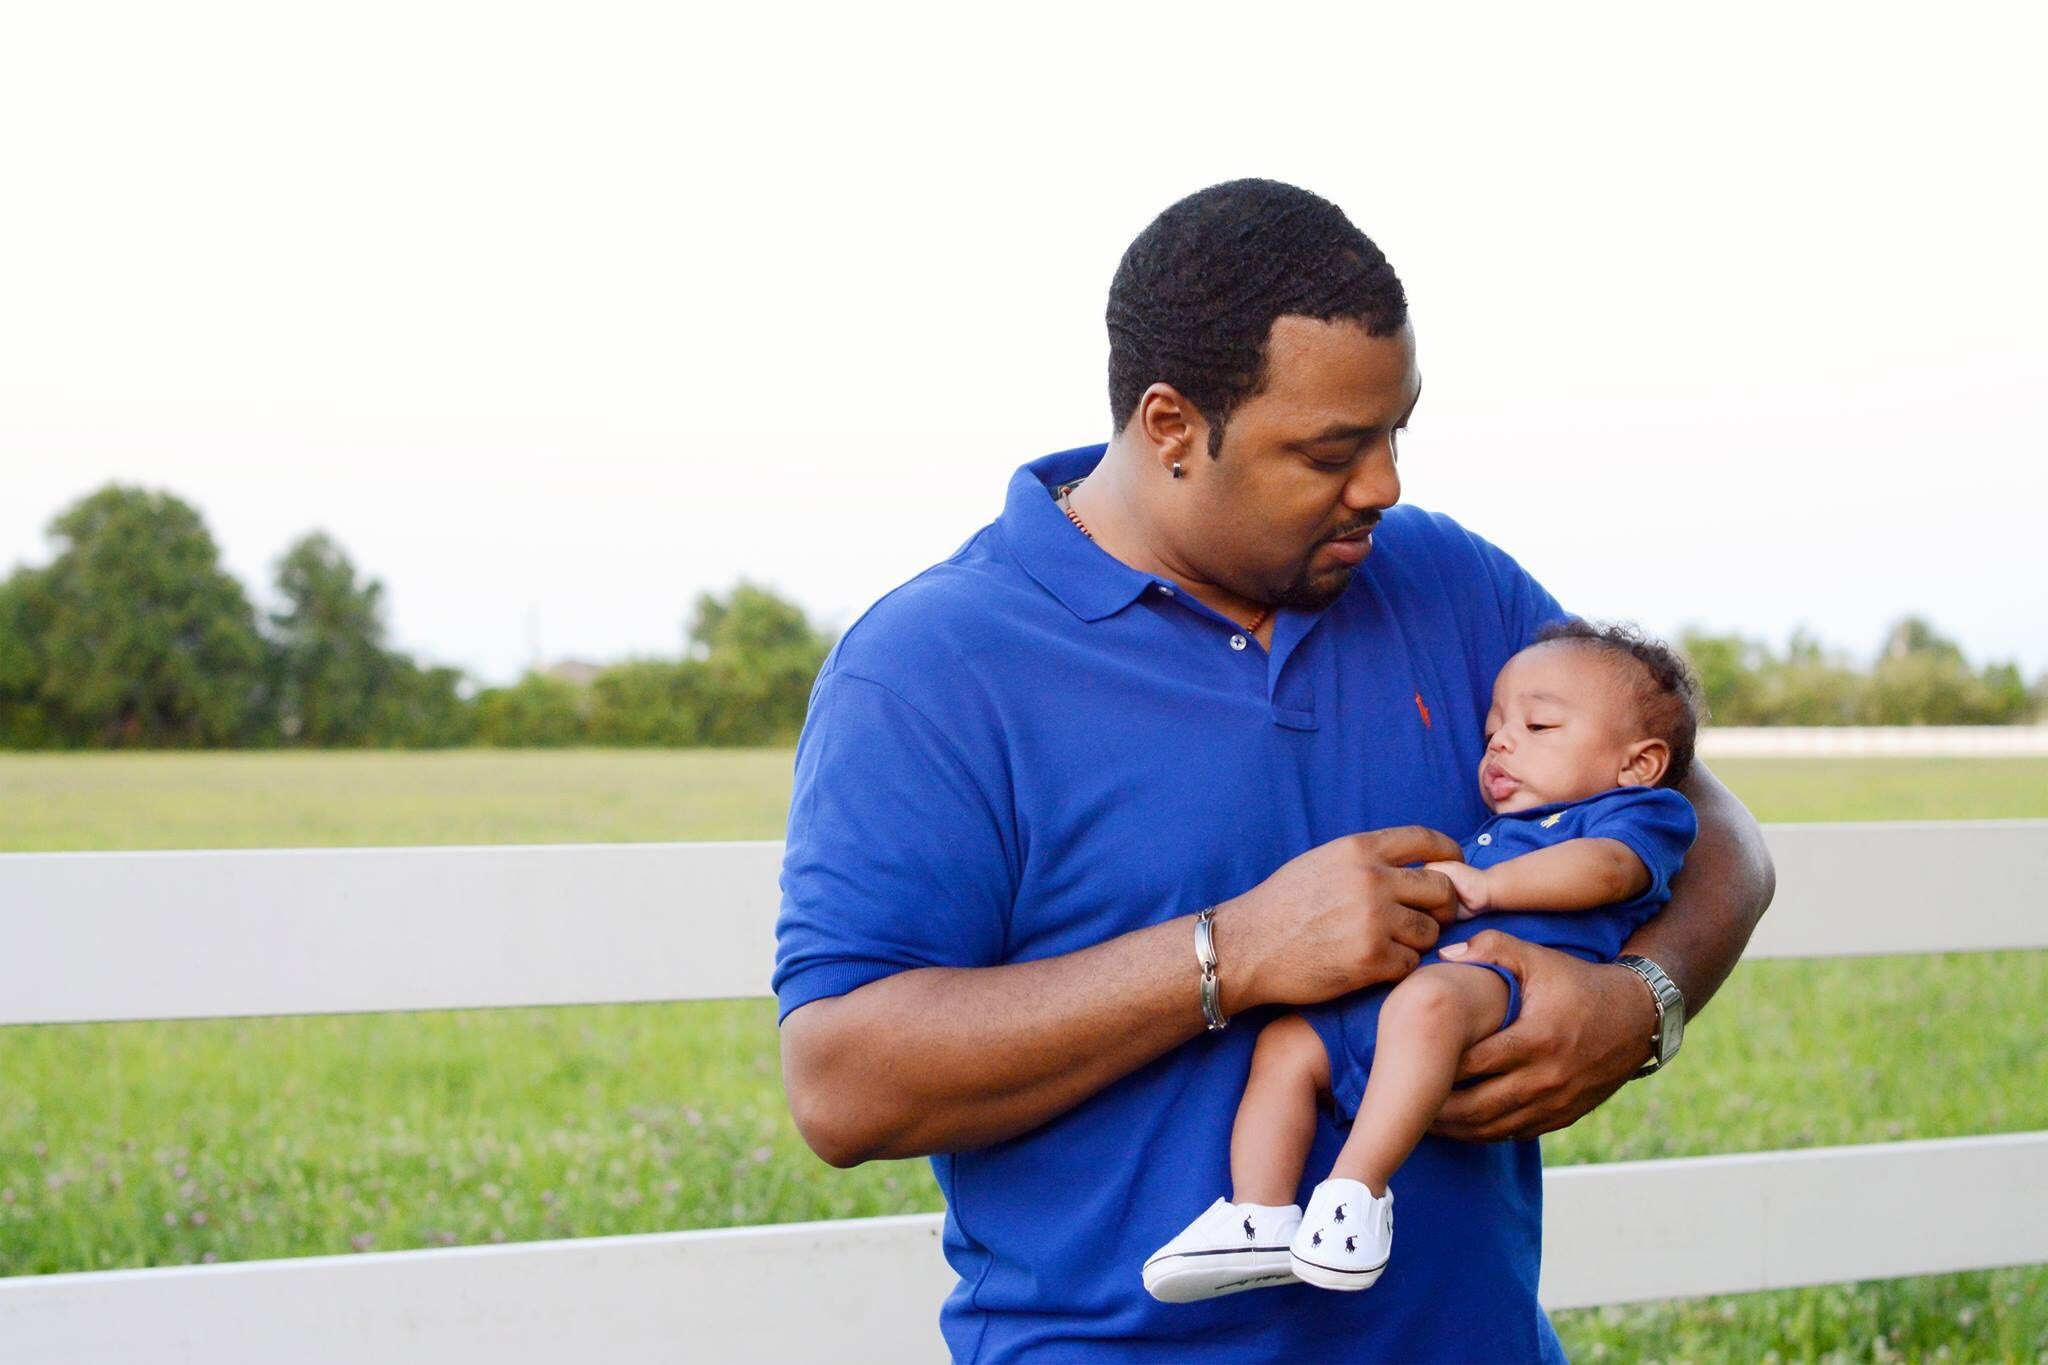 Kriston Guillot and his infant son, Kai.